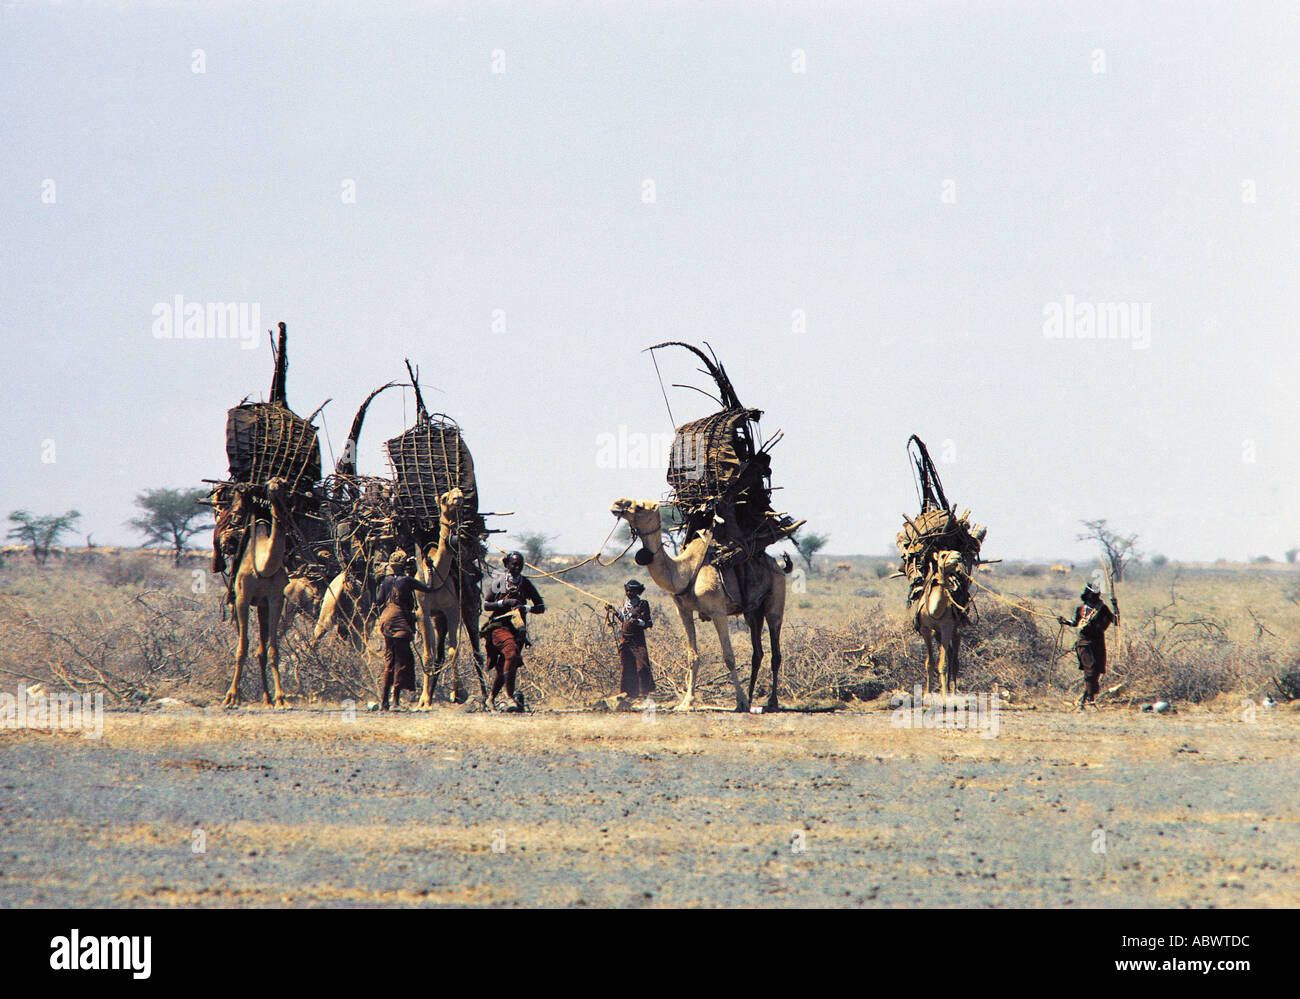 Gabbra women loading camels with their belongings prior to migrating to a new area - Stock Image